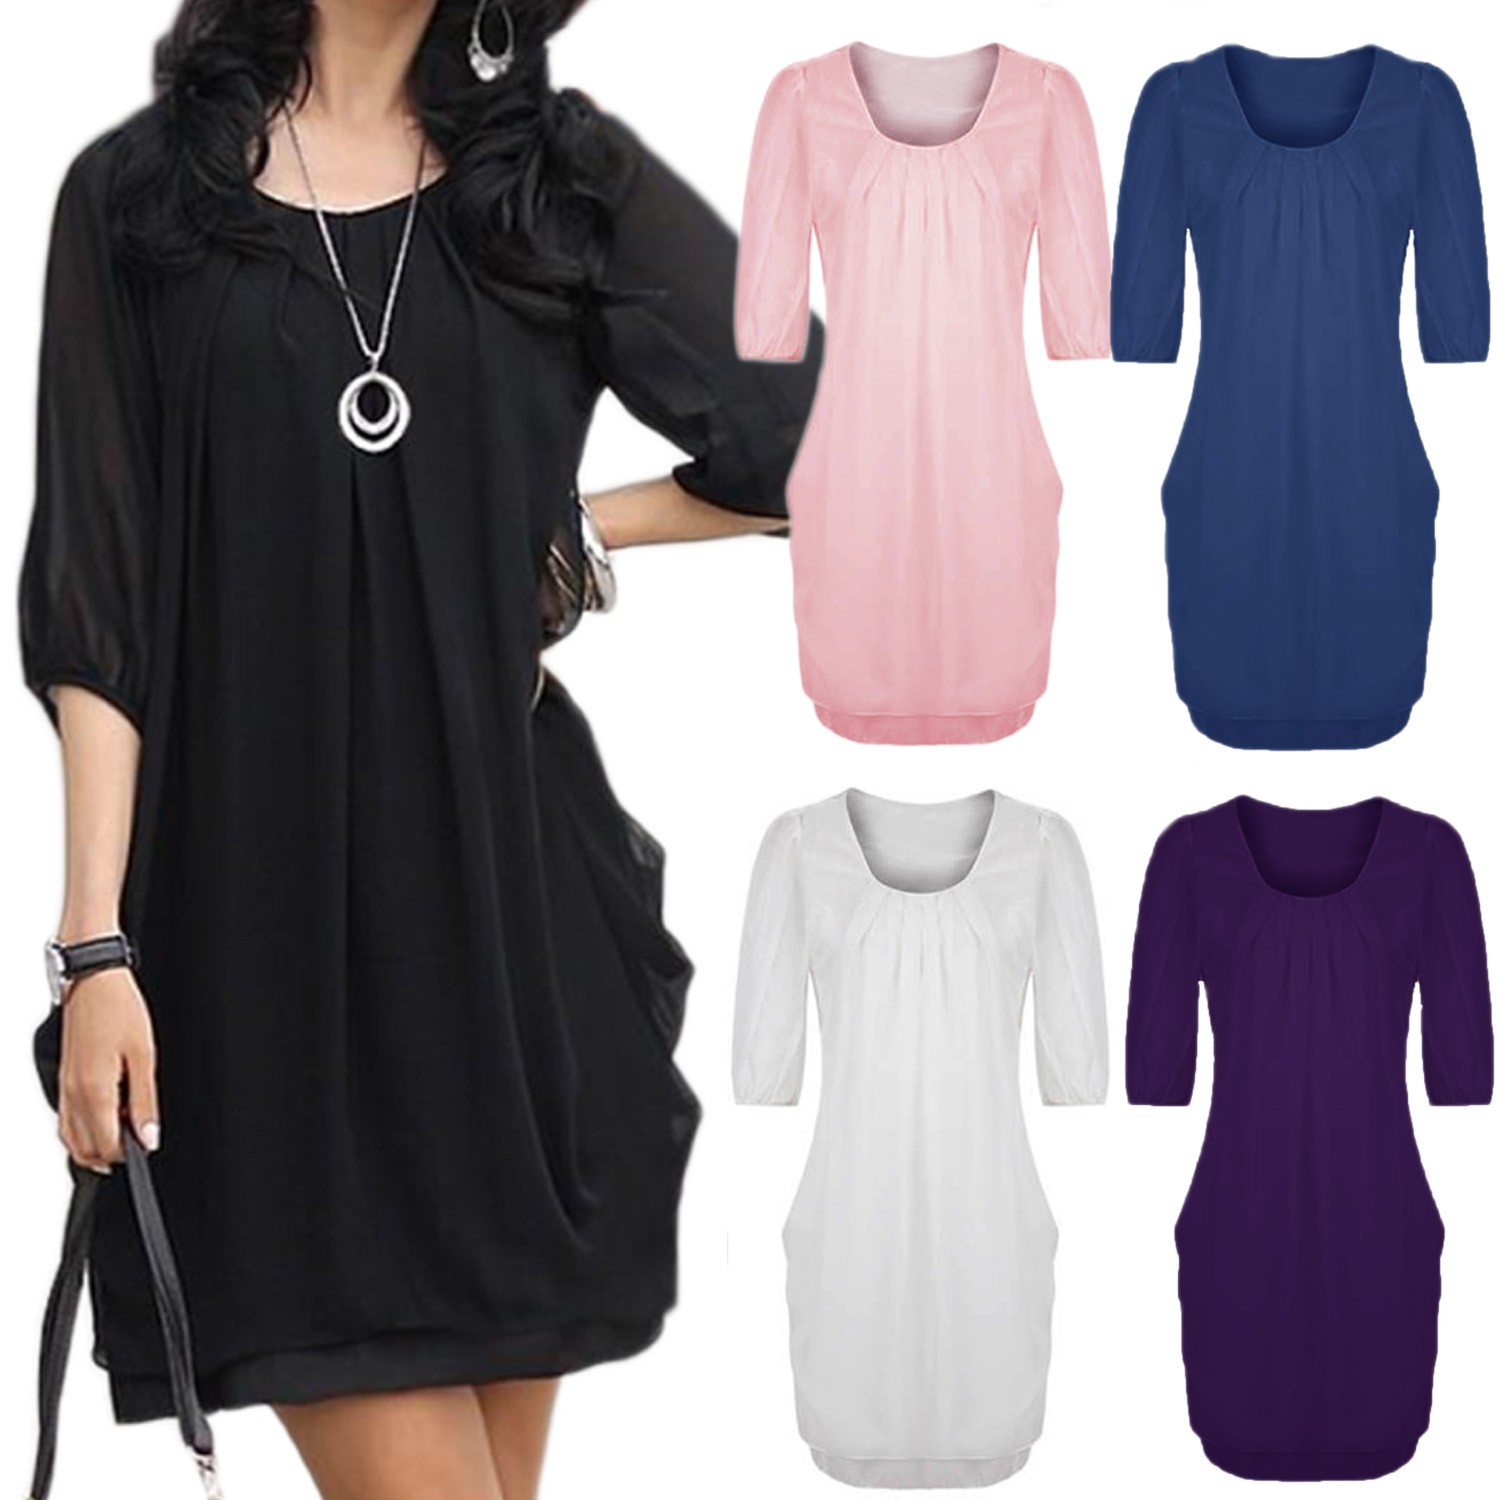 Chiffon Mini Dress - s150#